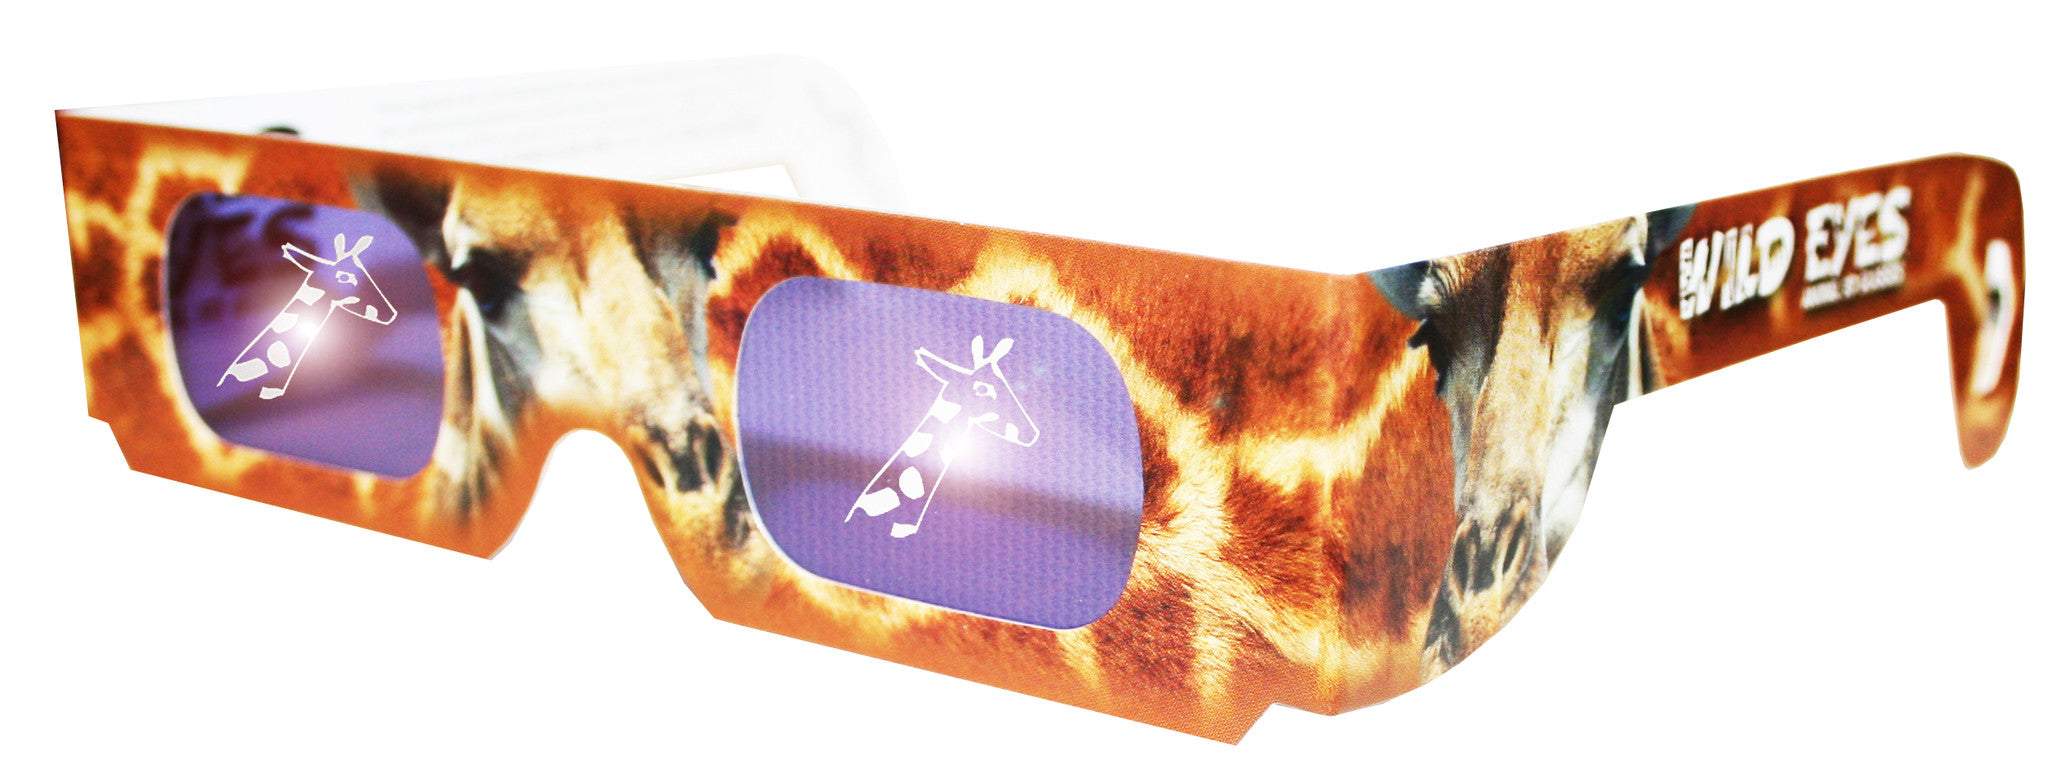 Holographic Giraffe Wild Eyes 3D Paper Glasses - Off The Wall Toys and Gifts